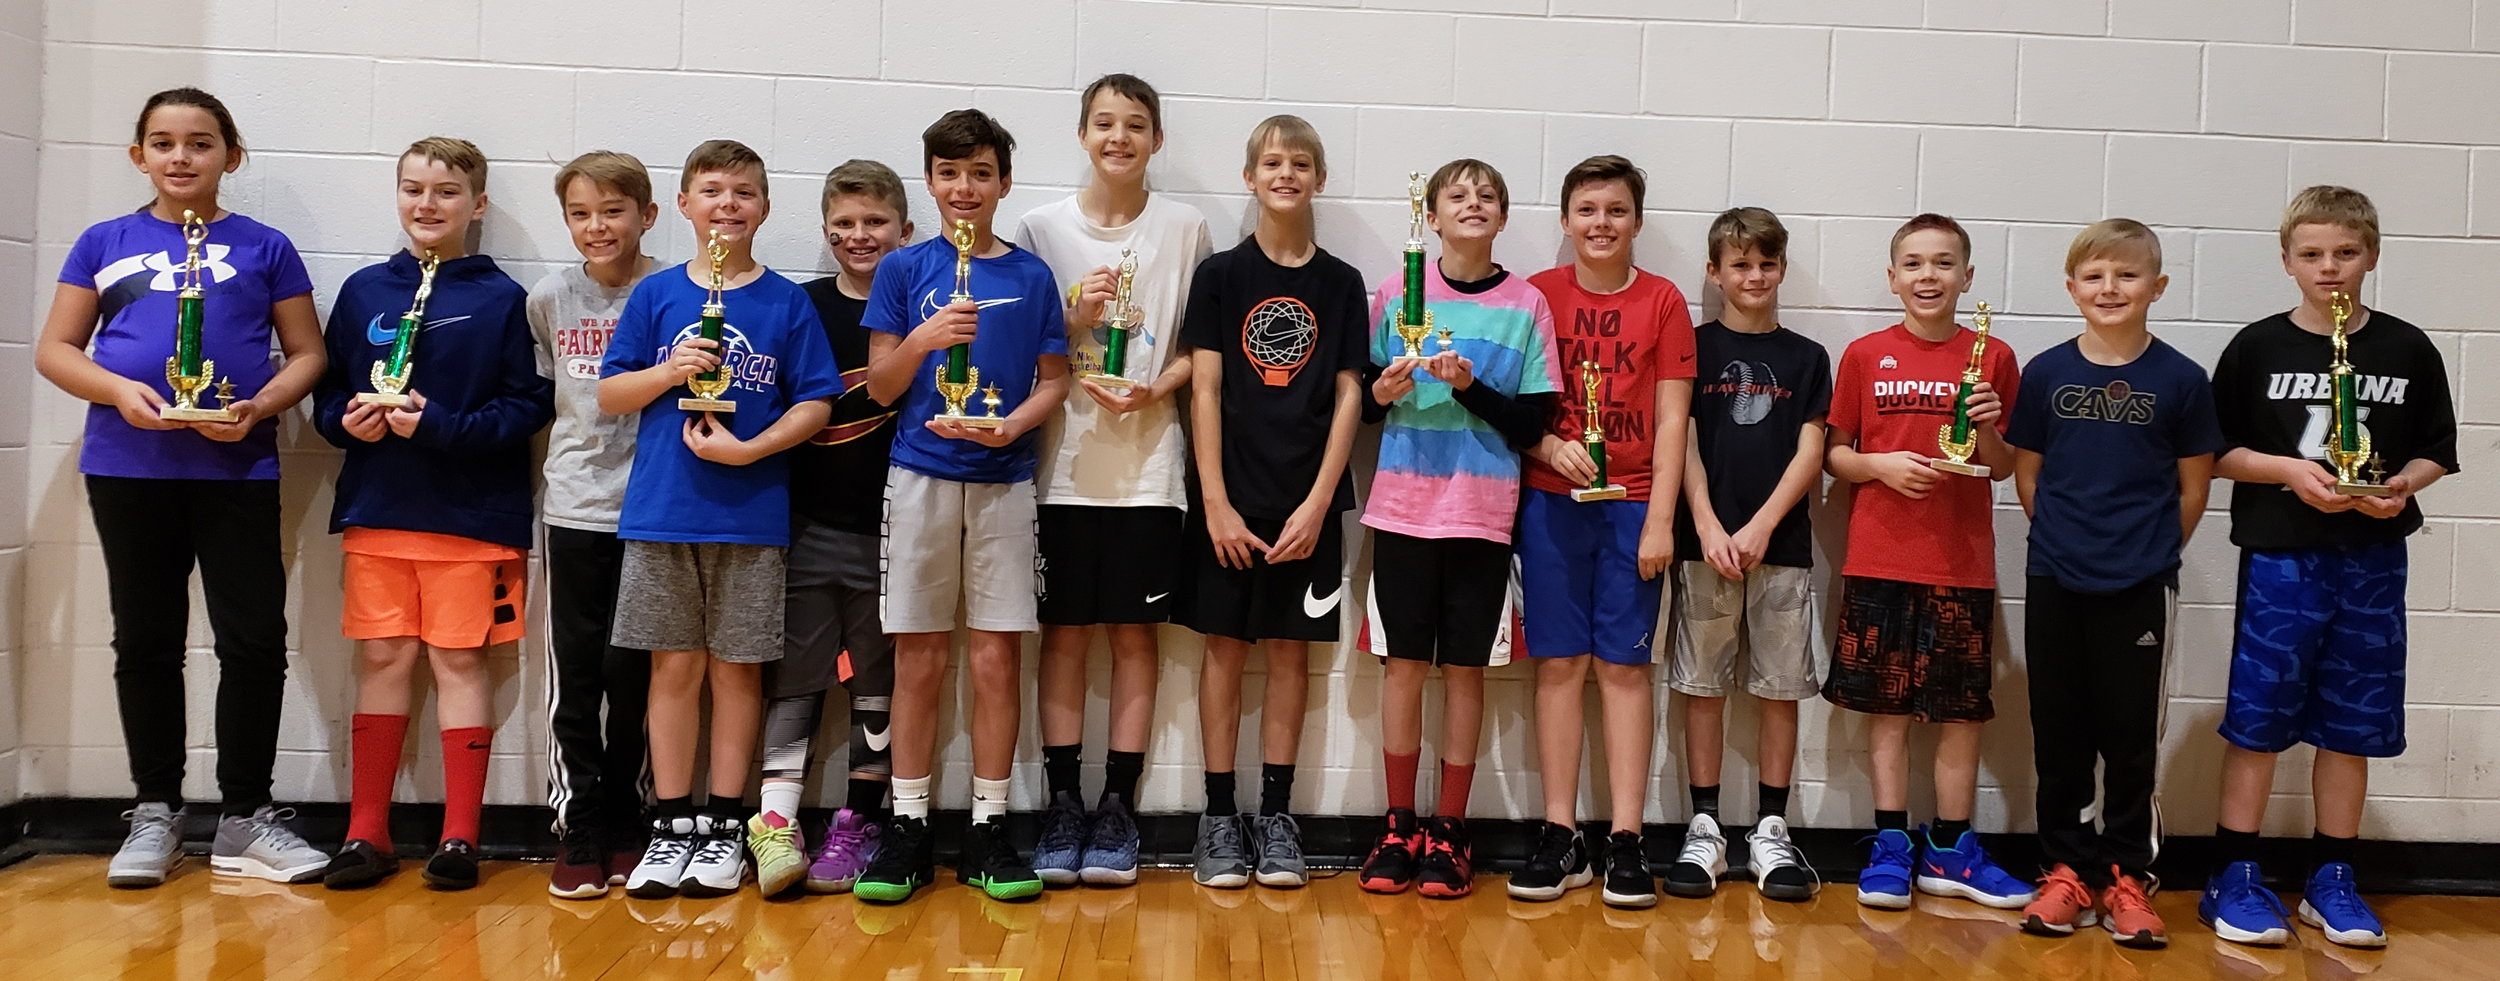 Shown in the picture are the winners and participants. The winners were: Boys 8-9 years old division - Dominick Dials, 10-11 division - Drew Hughes, 12-13 division - Merrick Reynolds. Girls 10-11 division Kylie Levings. The other participants are: A.J. Gratz, Drew Chaffin, Kiefer Brock, Alex Orders, Braden Bates, Brady Carper, Dawson Taylor, Caden Canfield, Carson Taylor, Clark Aden.